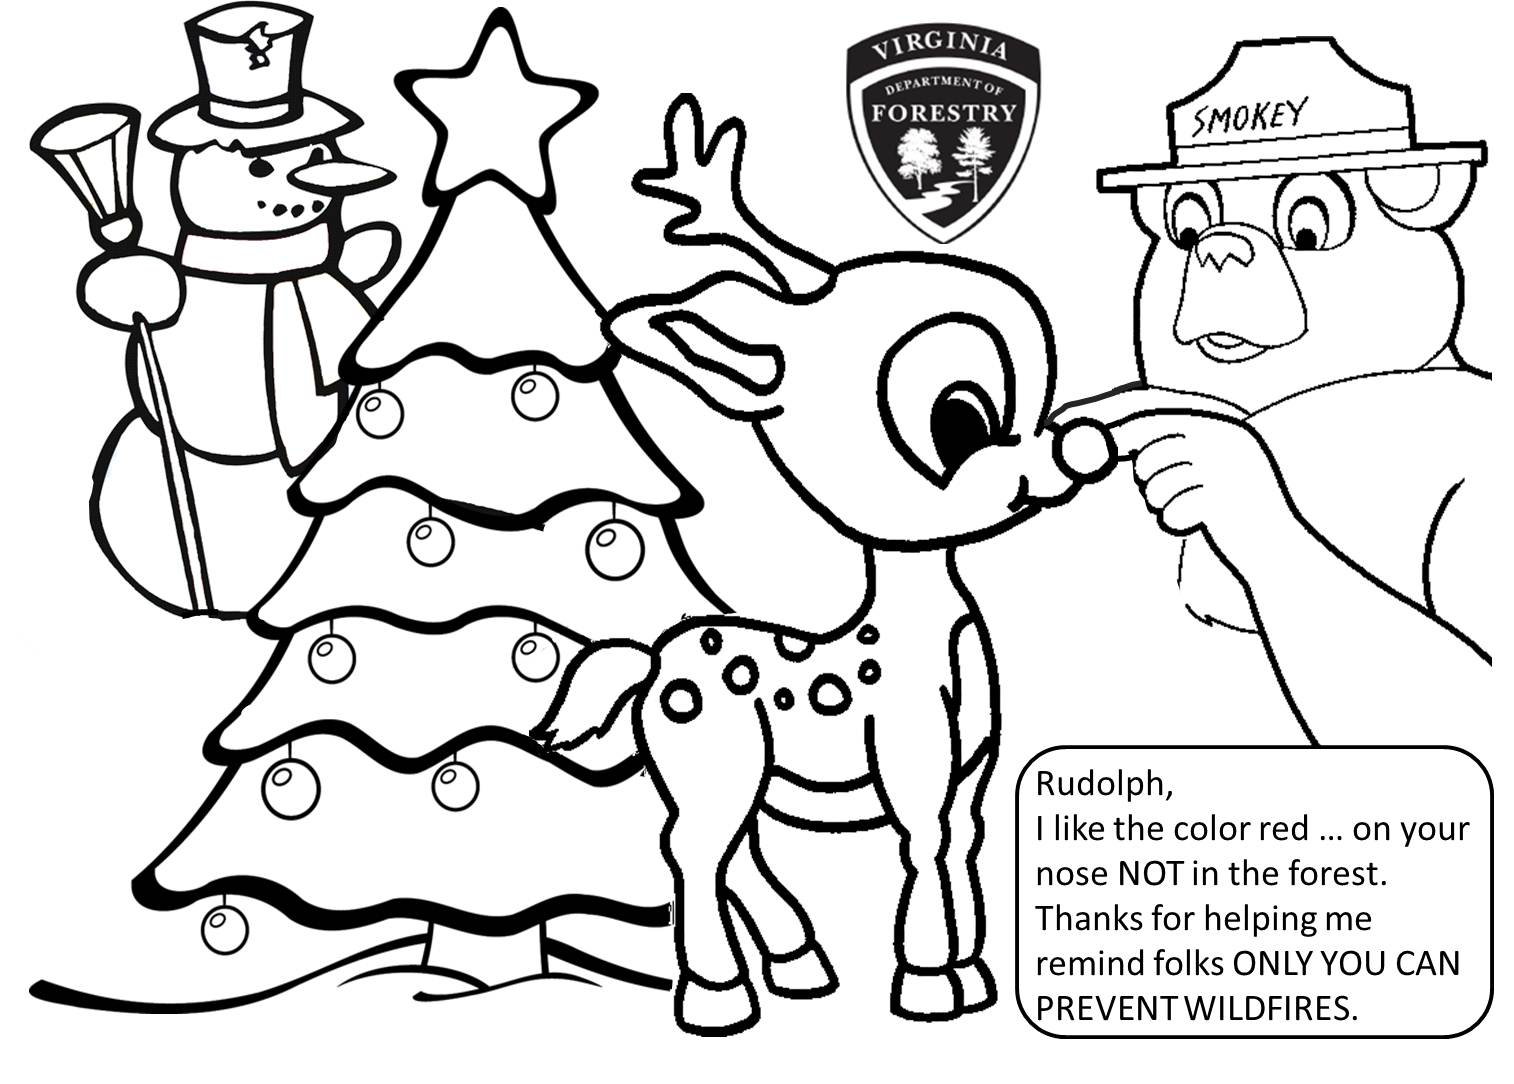 wilma rudolph coloring pages - photo#22